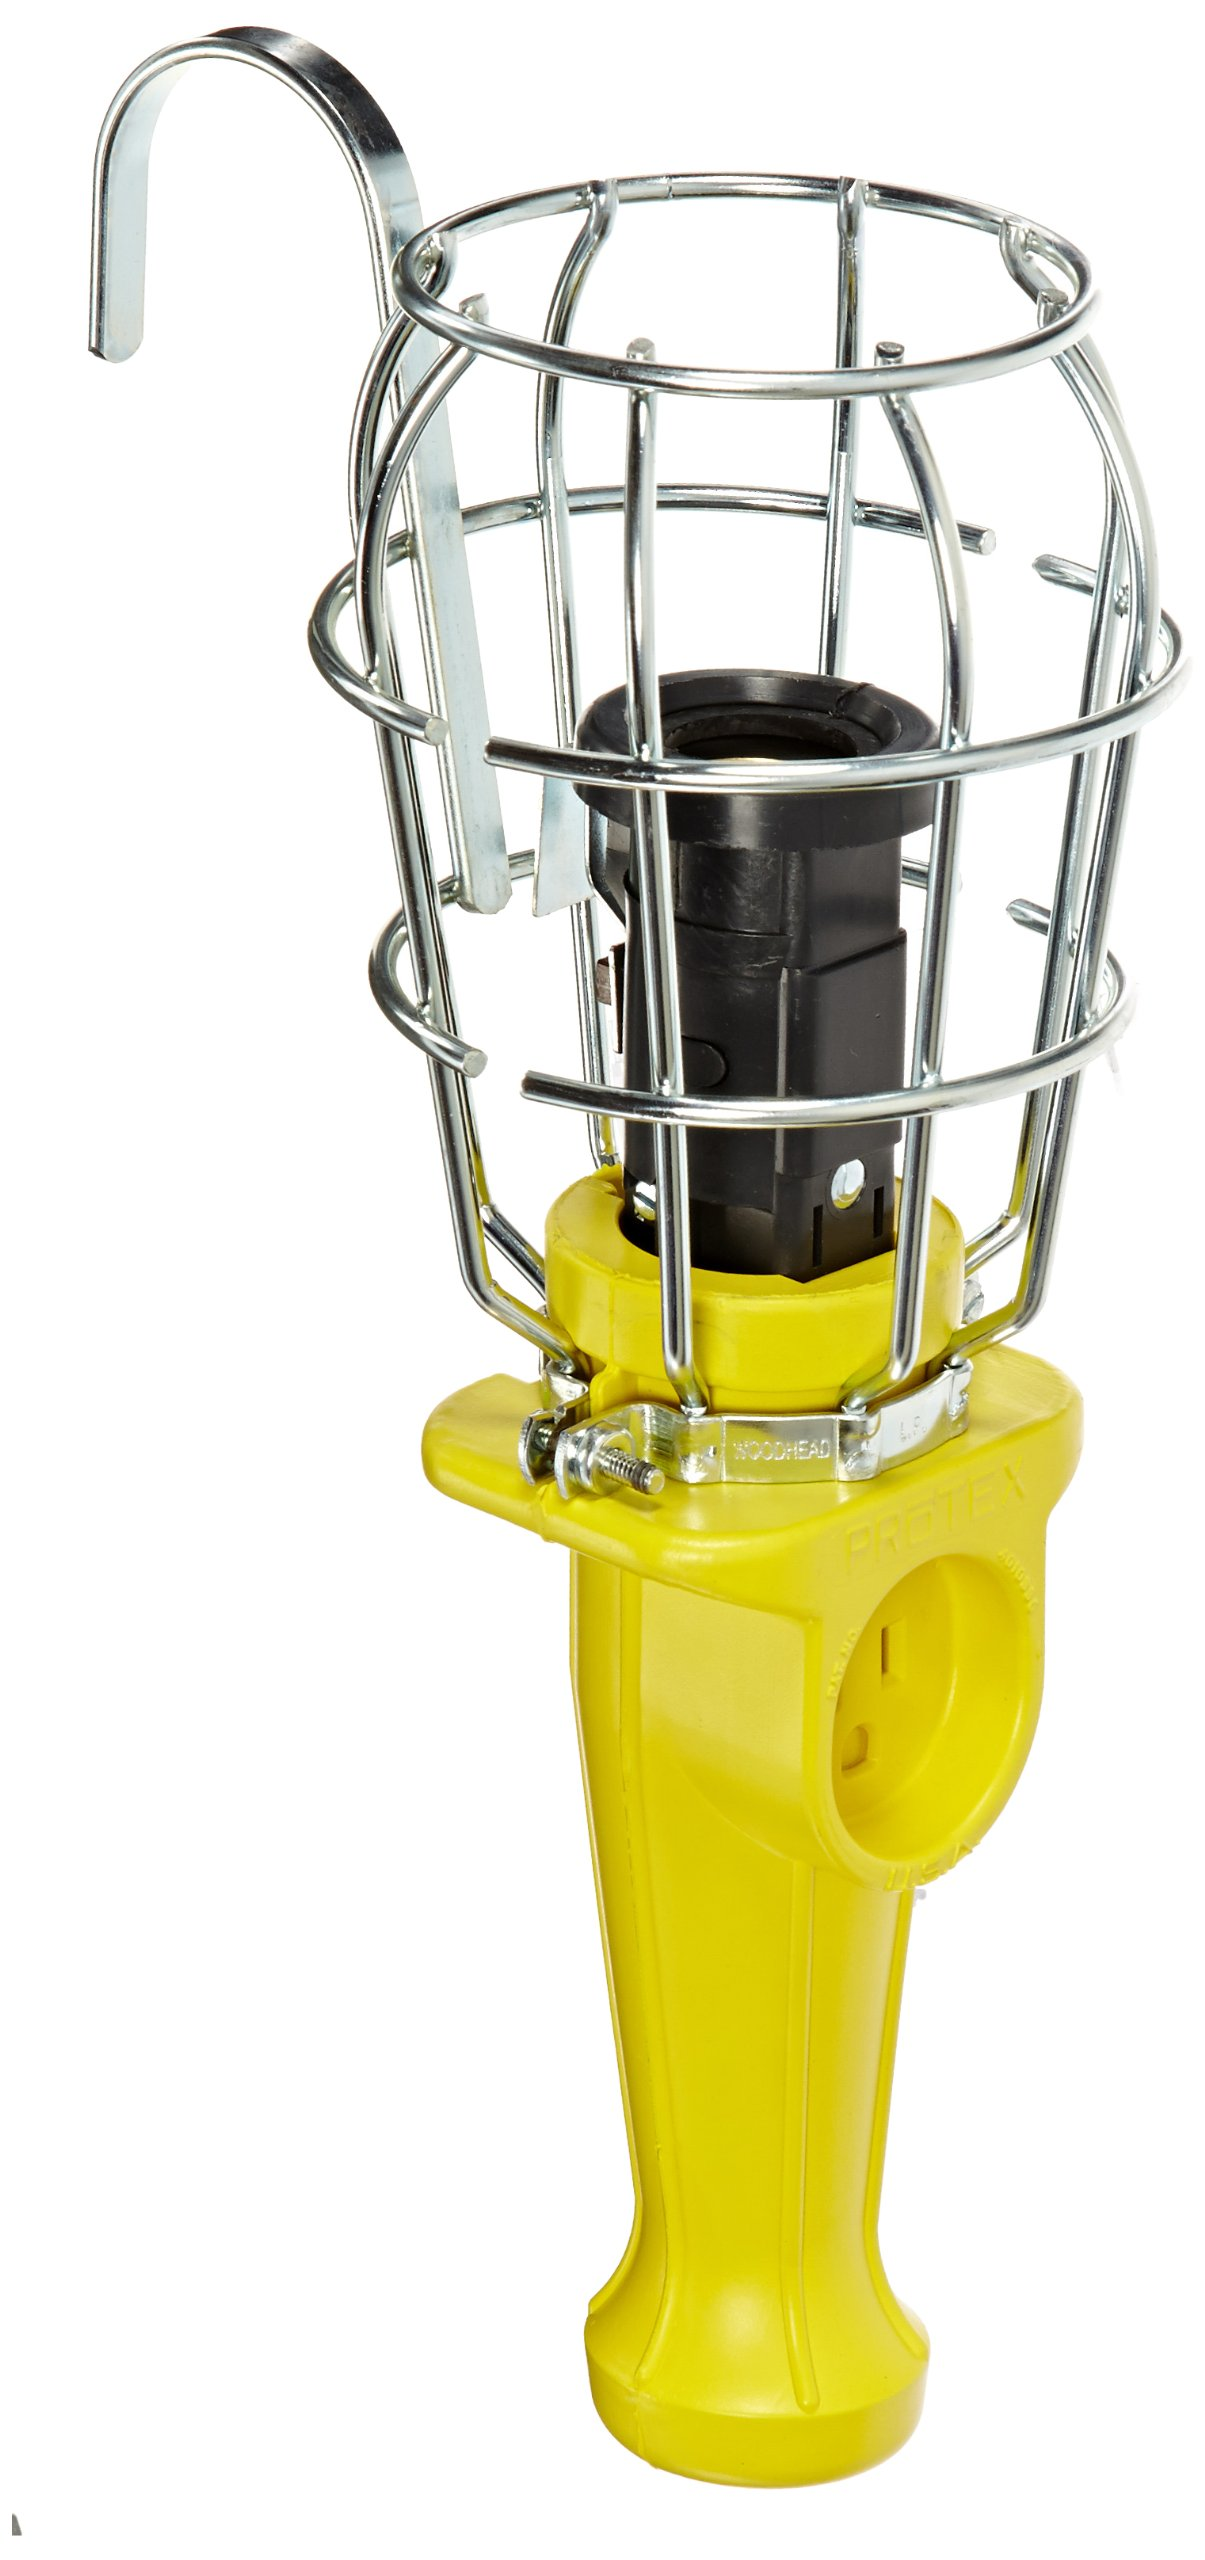 Woodhead 110US Super-Safeway Handlamp, Industrial Duty, Incandescent Bulb, 100W Max Lamp Wattage, Side Outlet, Switch, 16/3 SOOW Cord Length, Cord Length by Woodhead